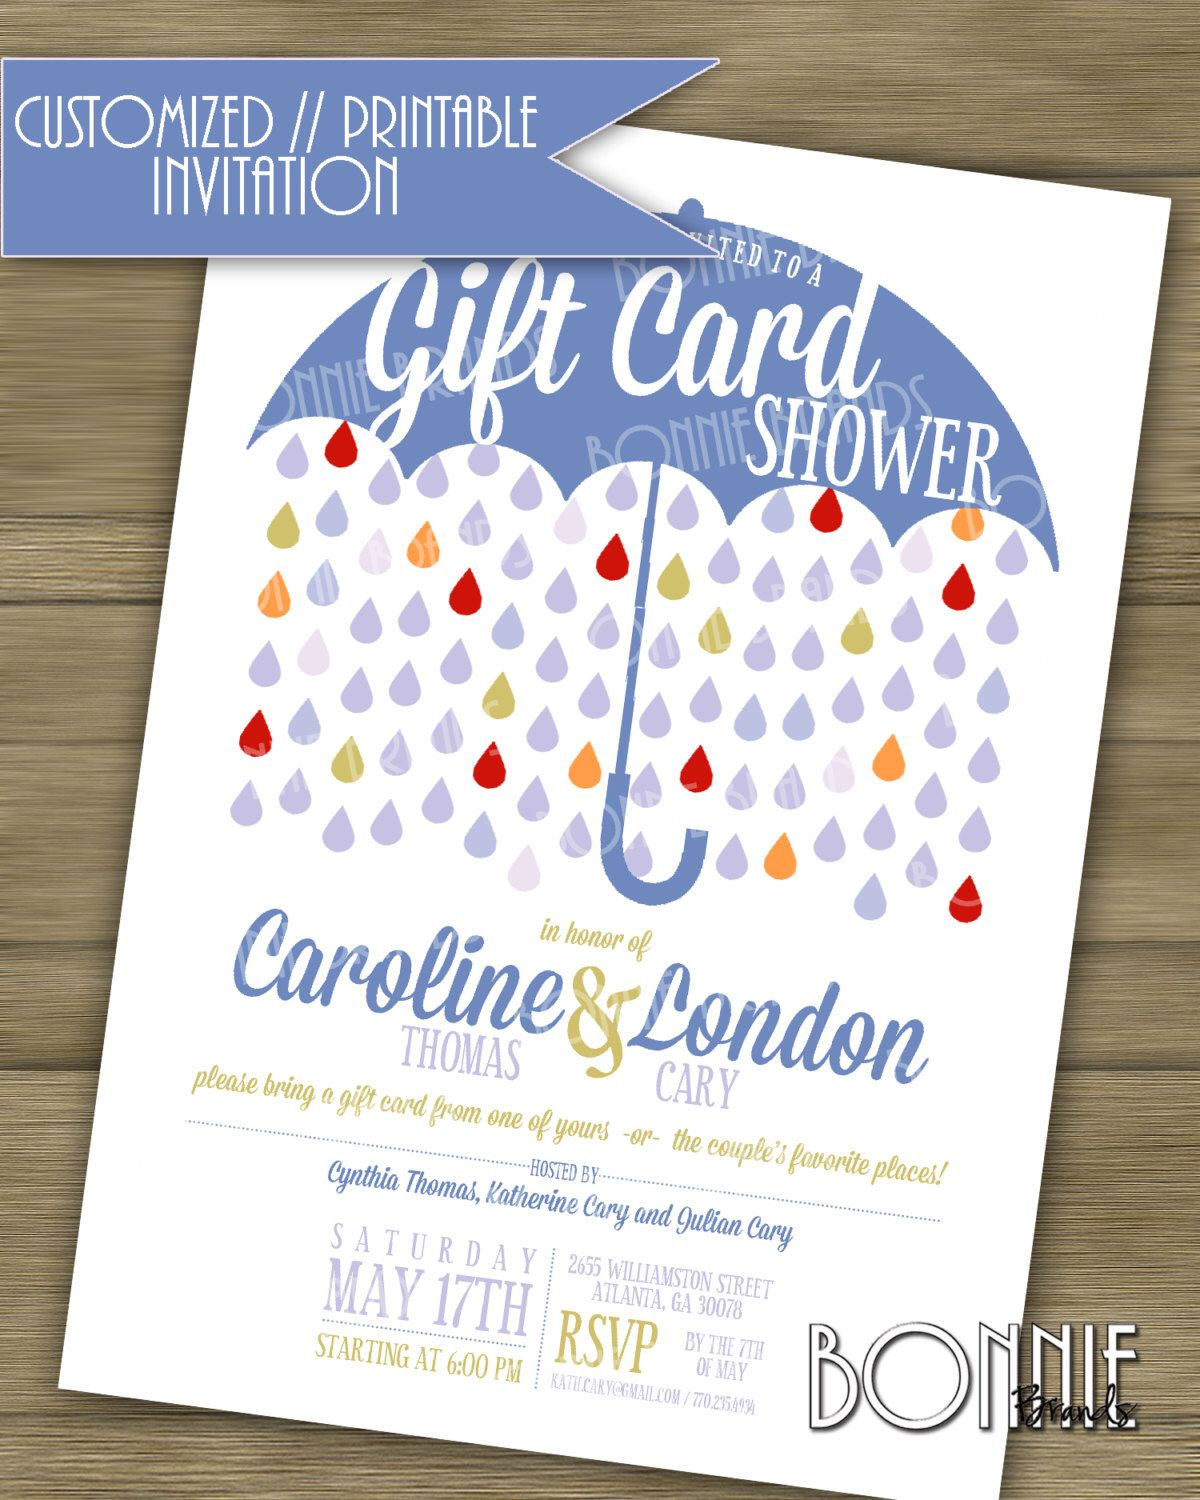 CUSTOMIZED // PRINTABLE // Couple's Wedding Shower